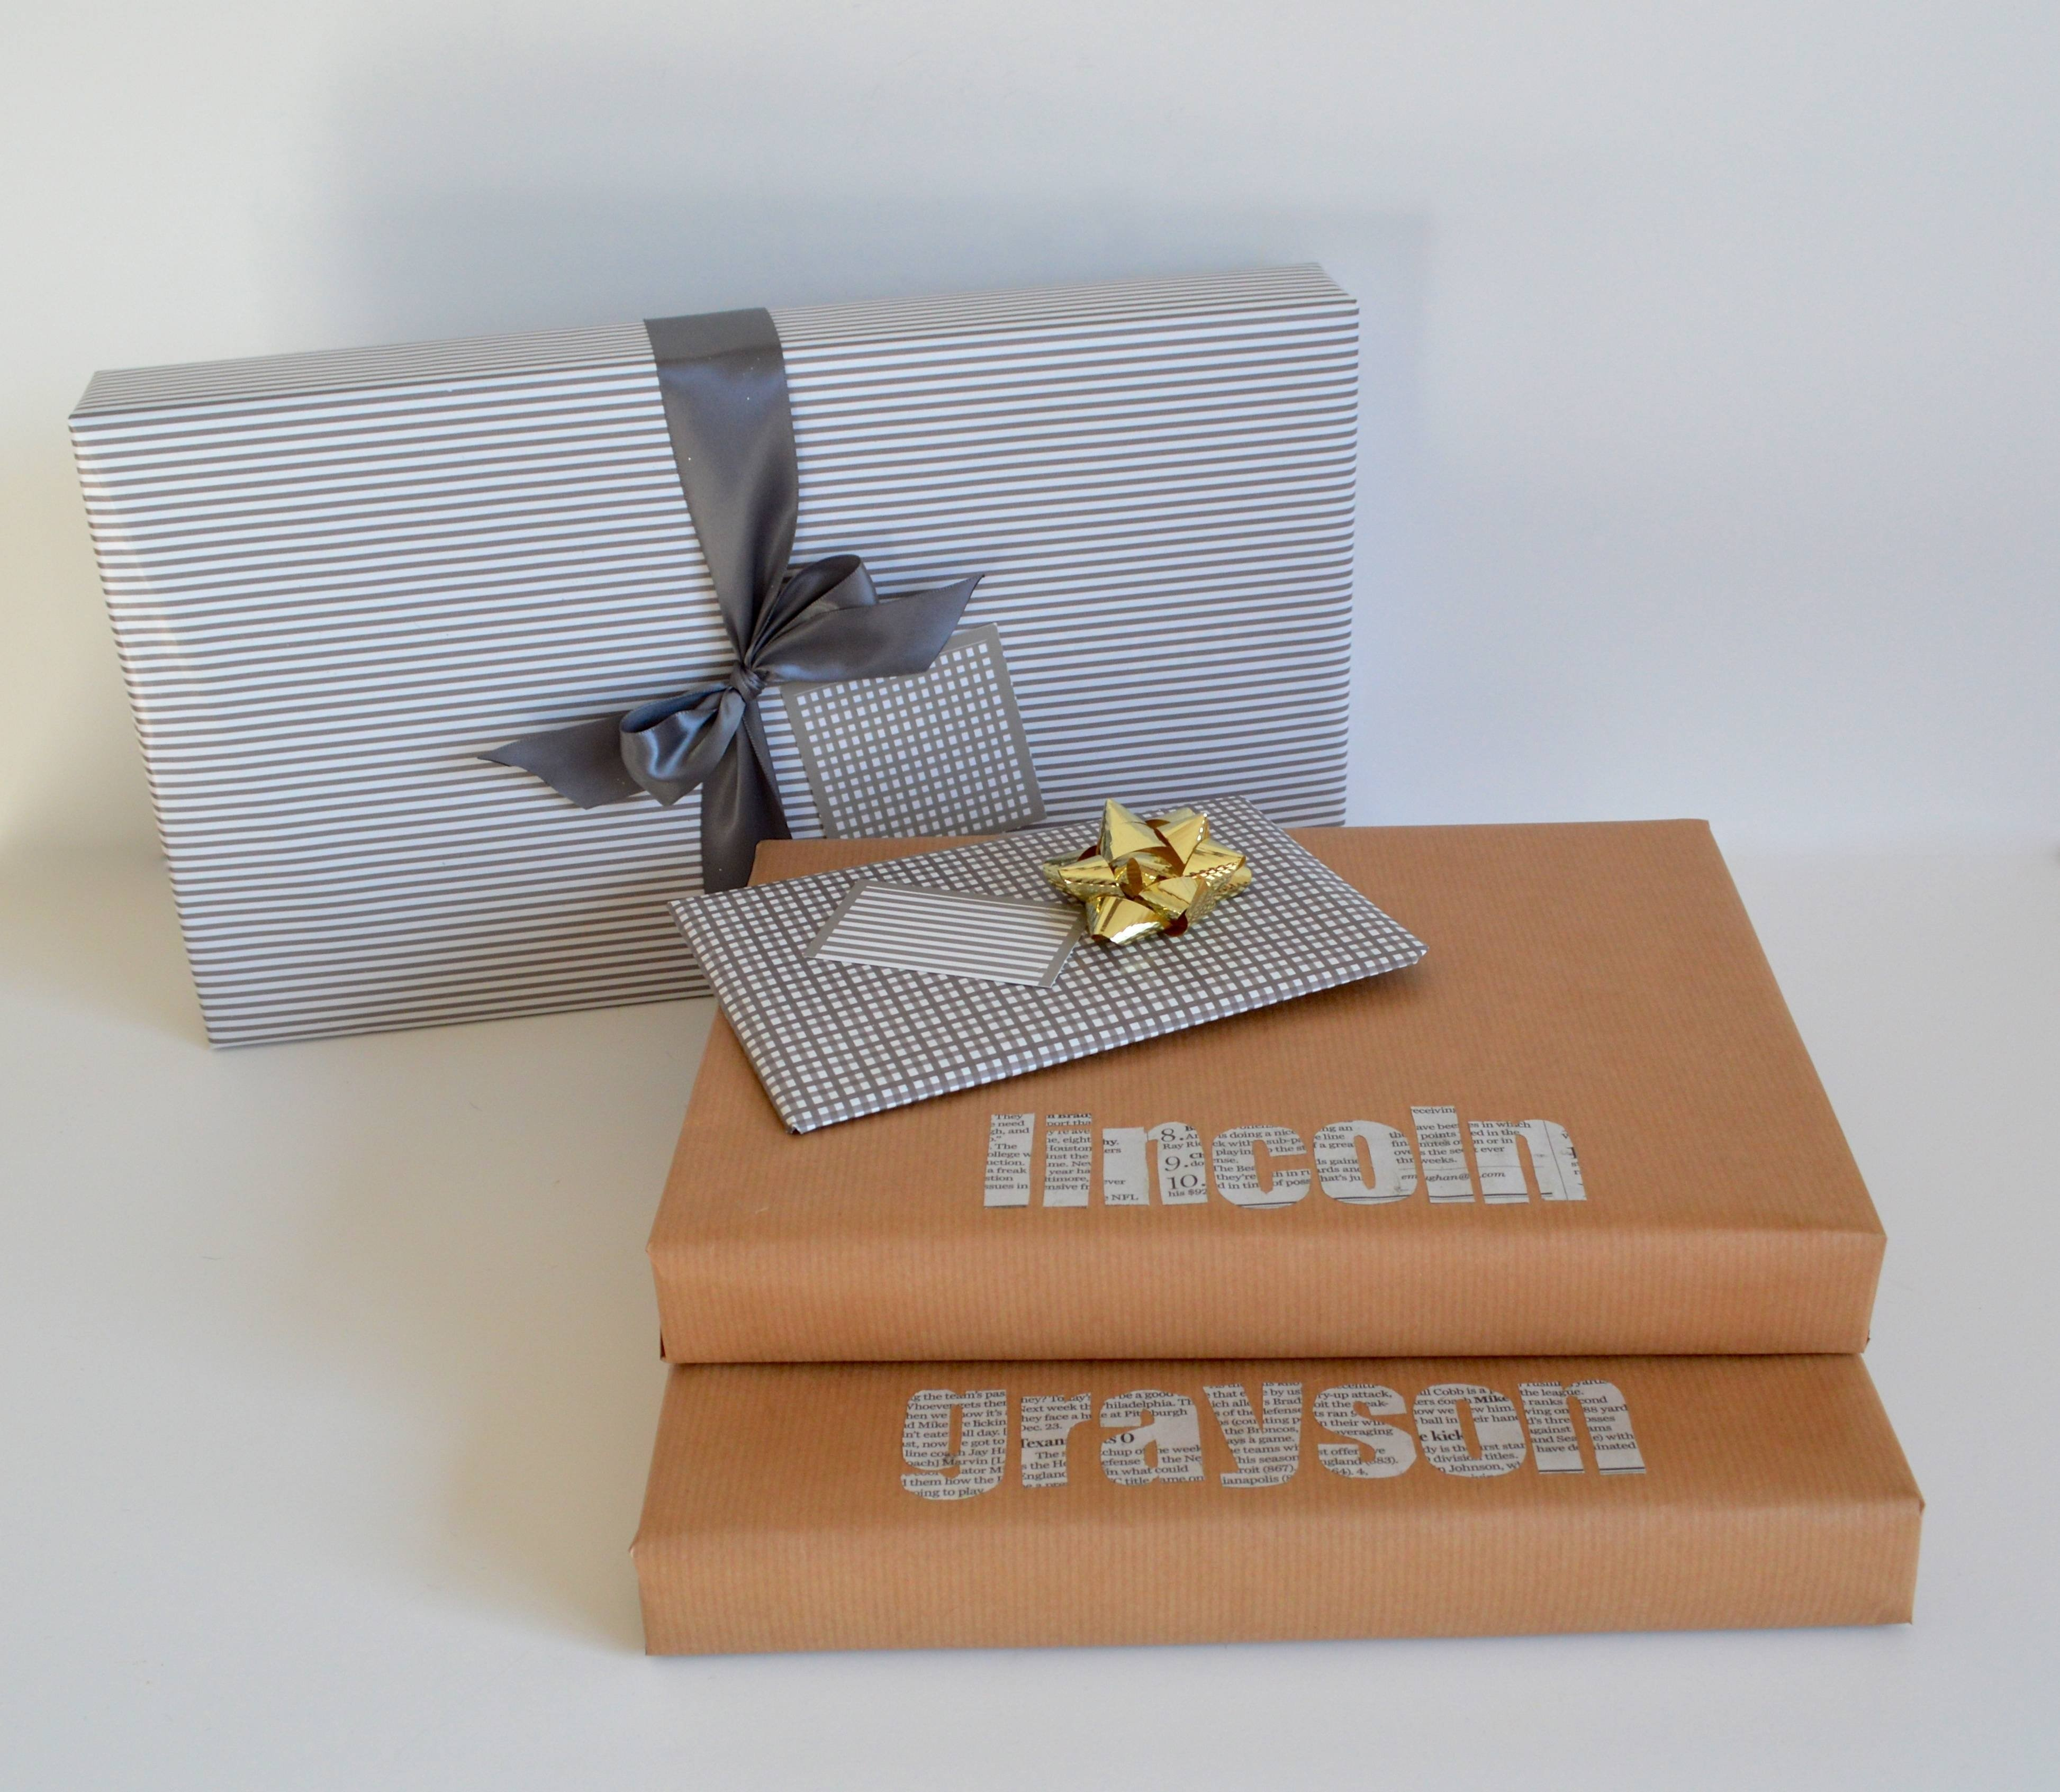 10 Stylish Gift Wrapping Ideas For Him showy men plus gift ideas along with beauty plus men citizens along 2 2020